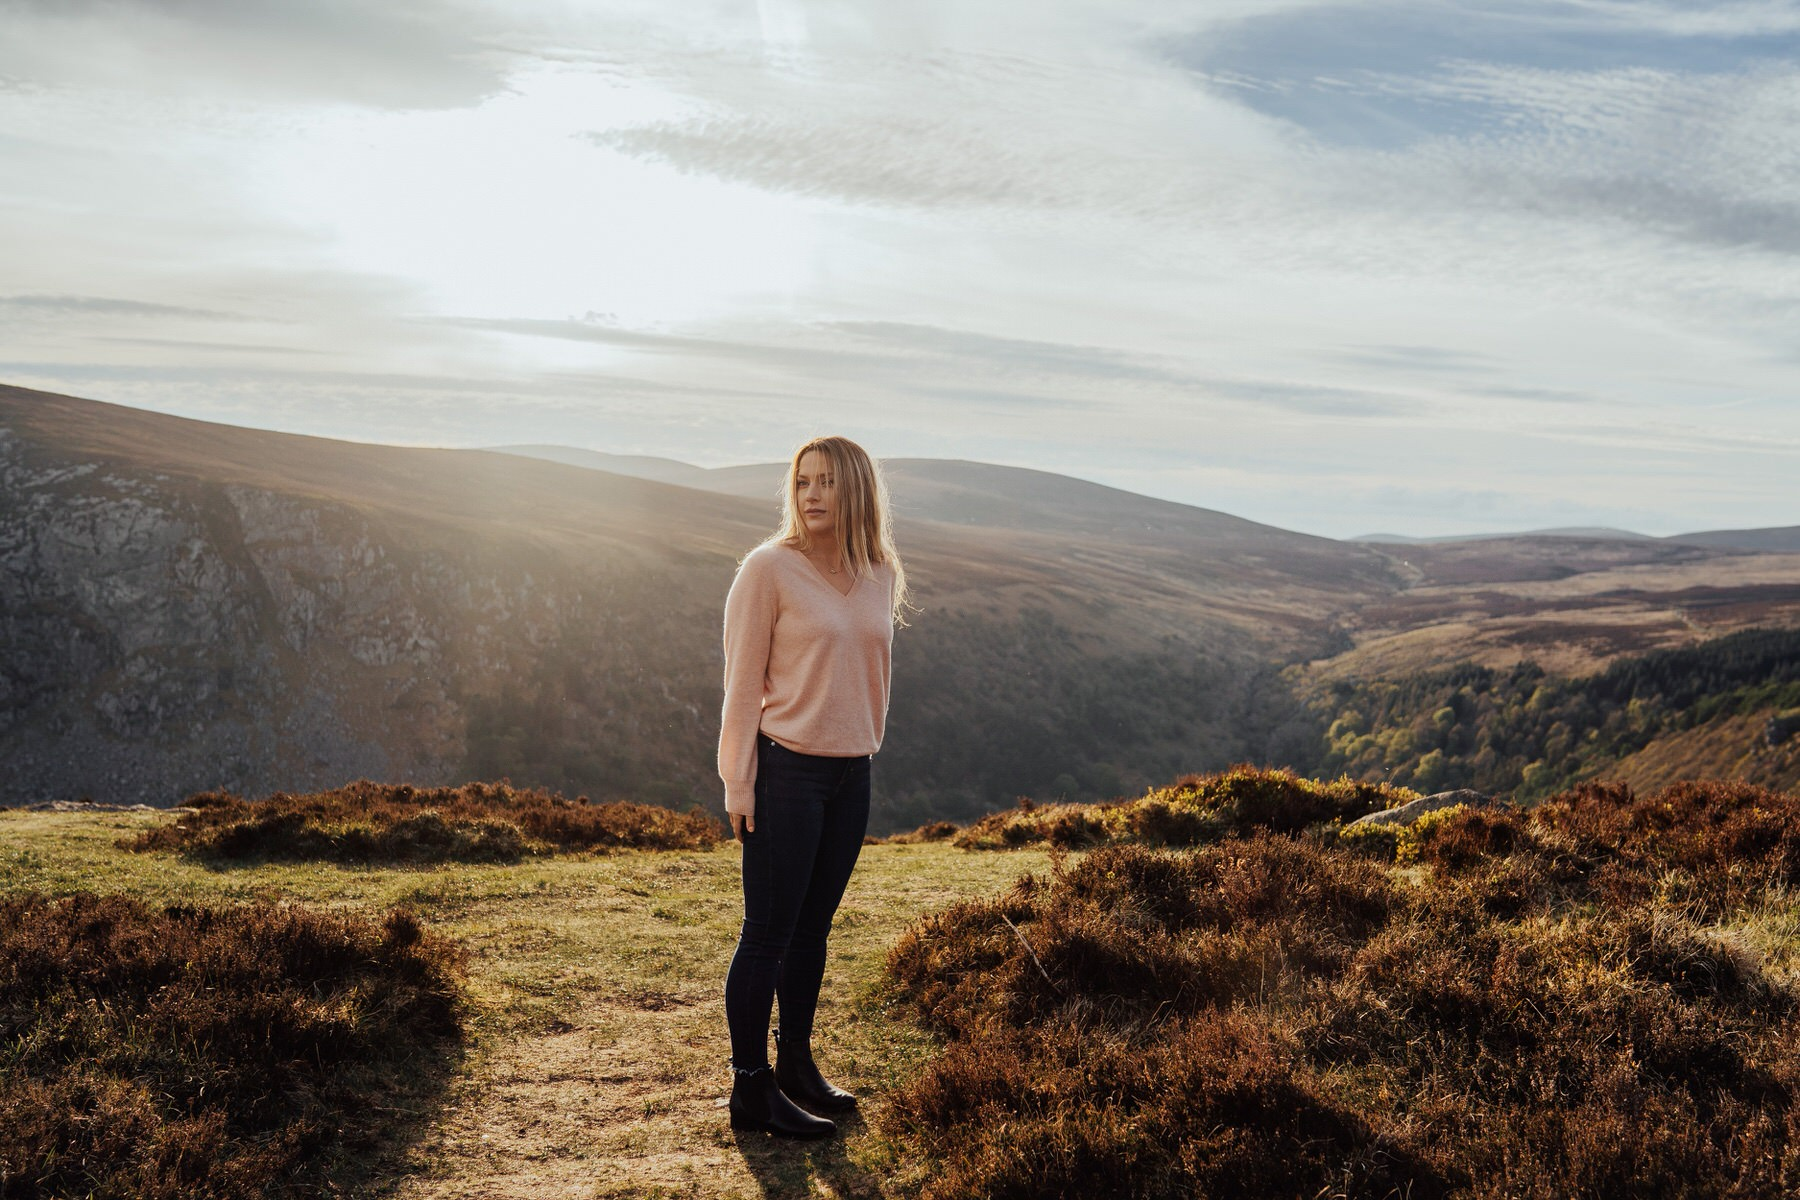 A girl standing on a mountain